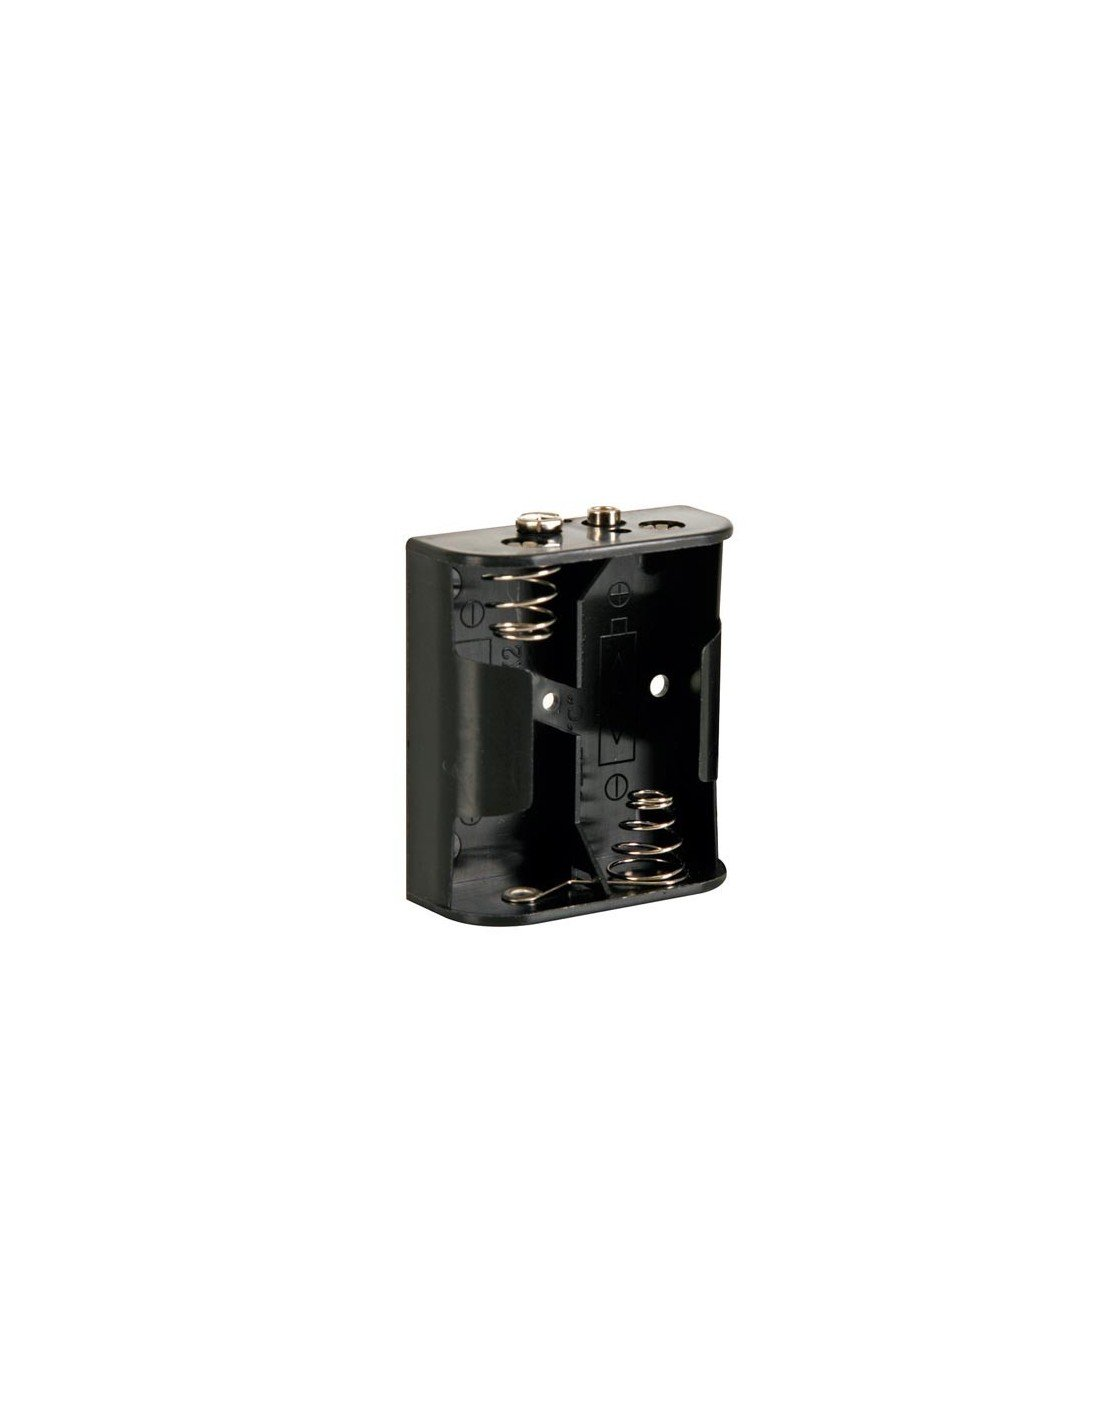 Velleman BH221B Battery Holder for 2 x C-Cell with Snap Terminals, 1 Grade to 12 Grade